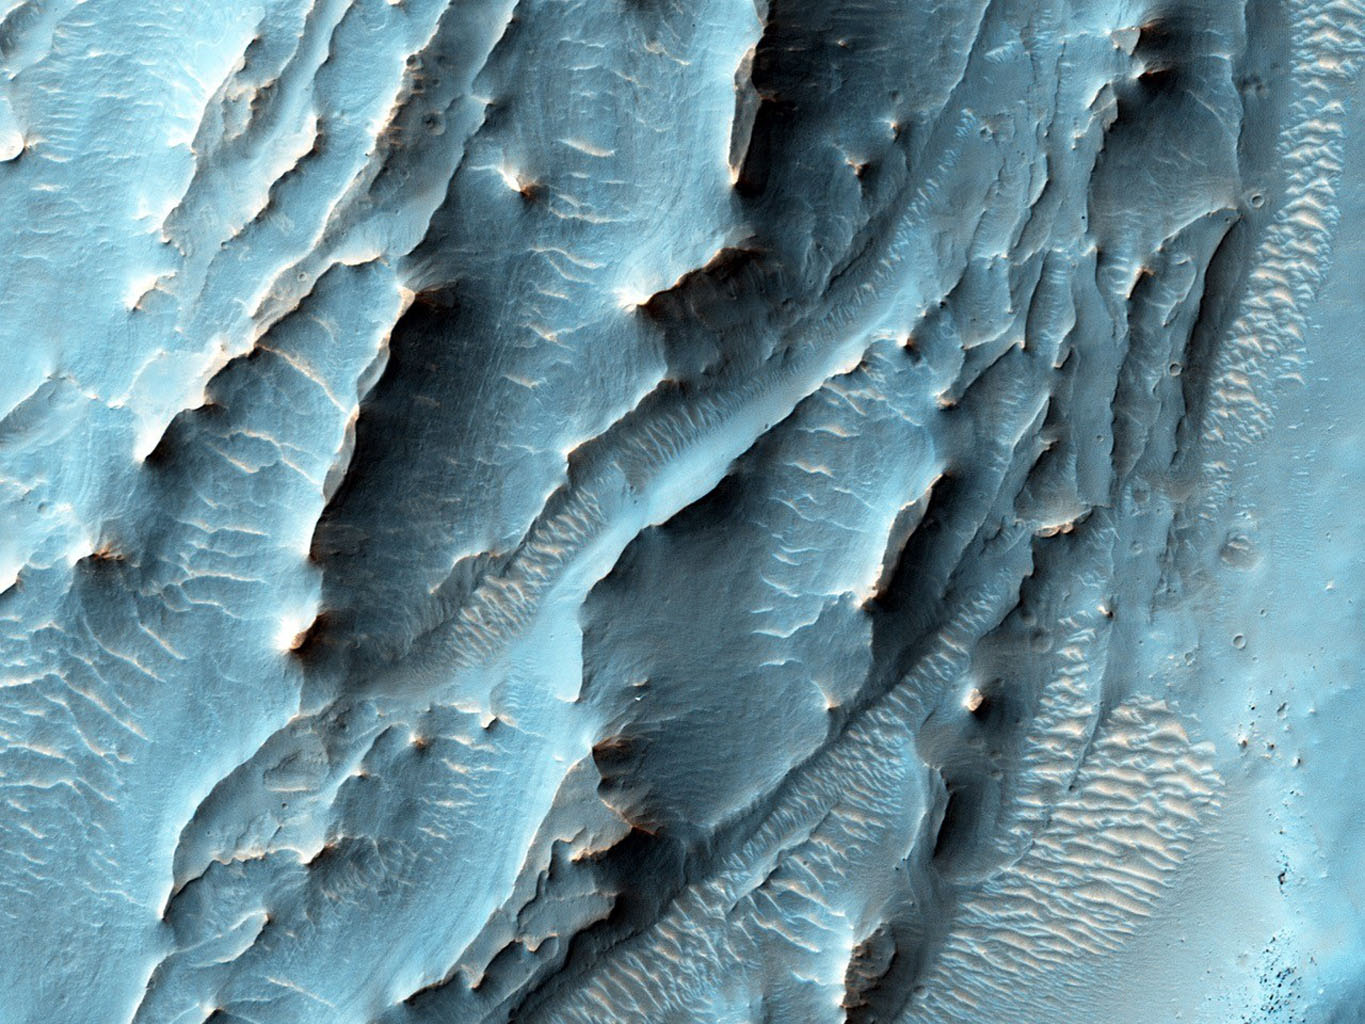 NASA's Mars Reconnaissance Orbiter used its HiRISE camera to obtain this view of an area with unusual texture on the southern floor of Gale Crater. An enigmatic deposit appears to have flowed into the small crater from the south.